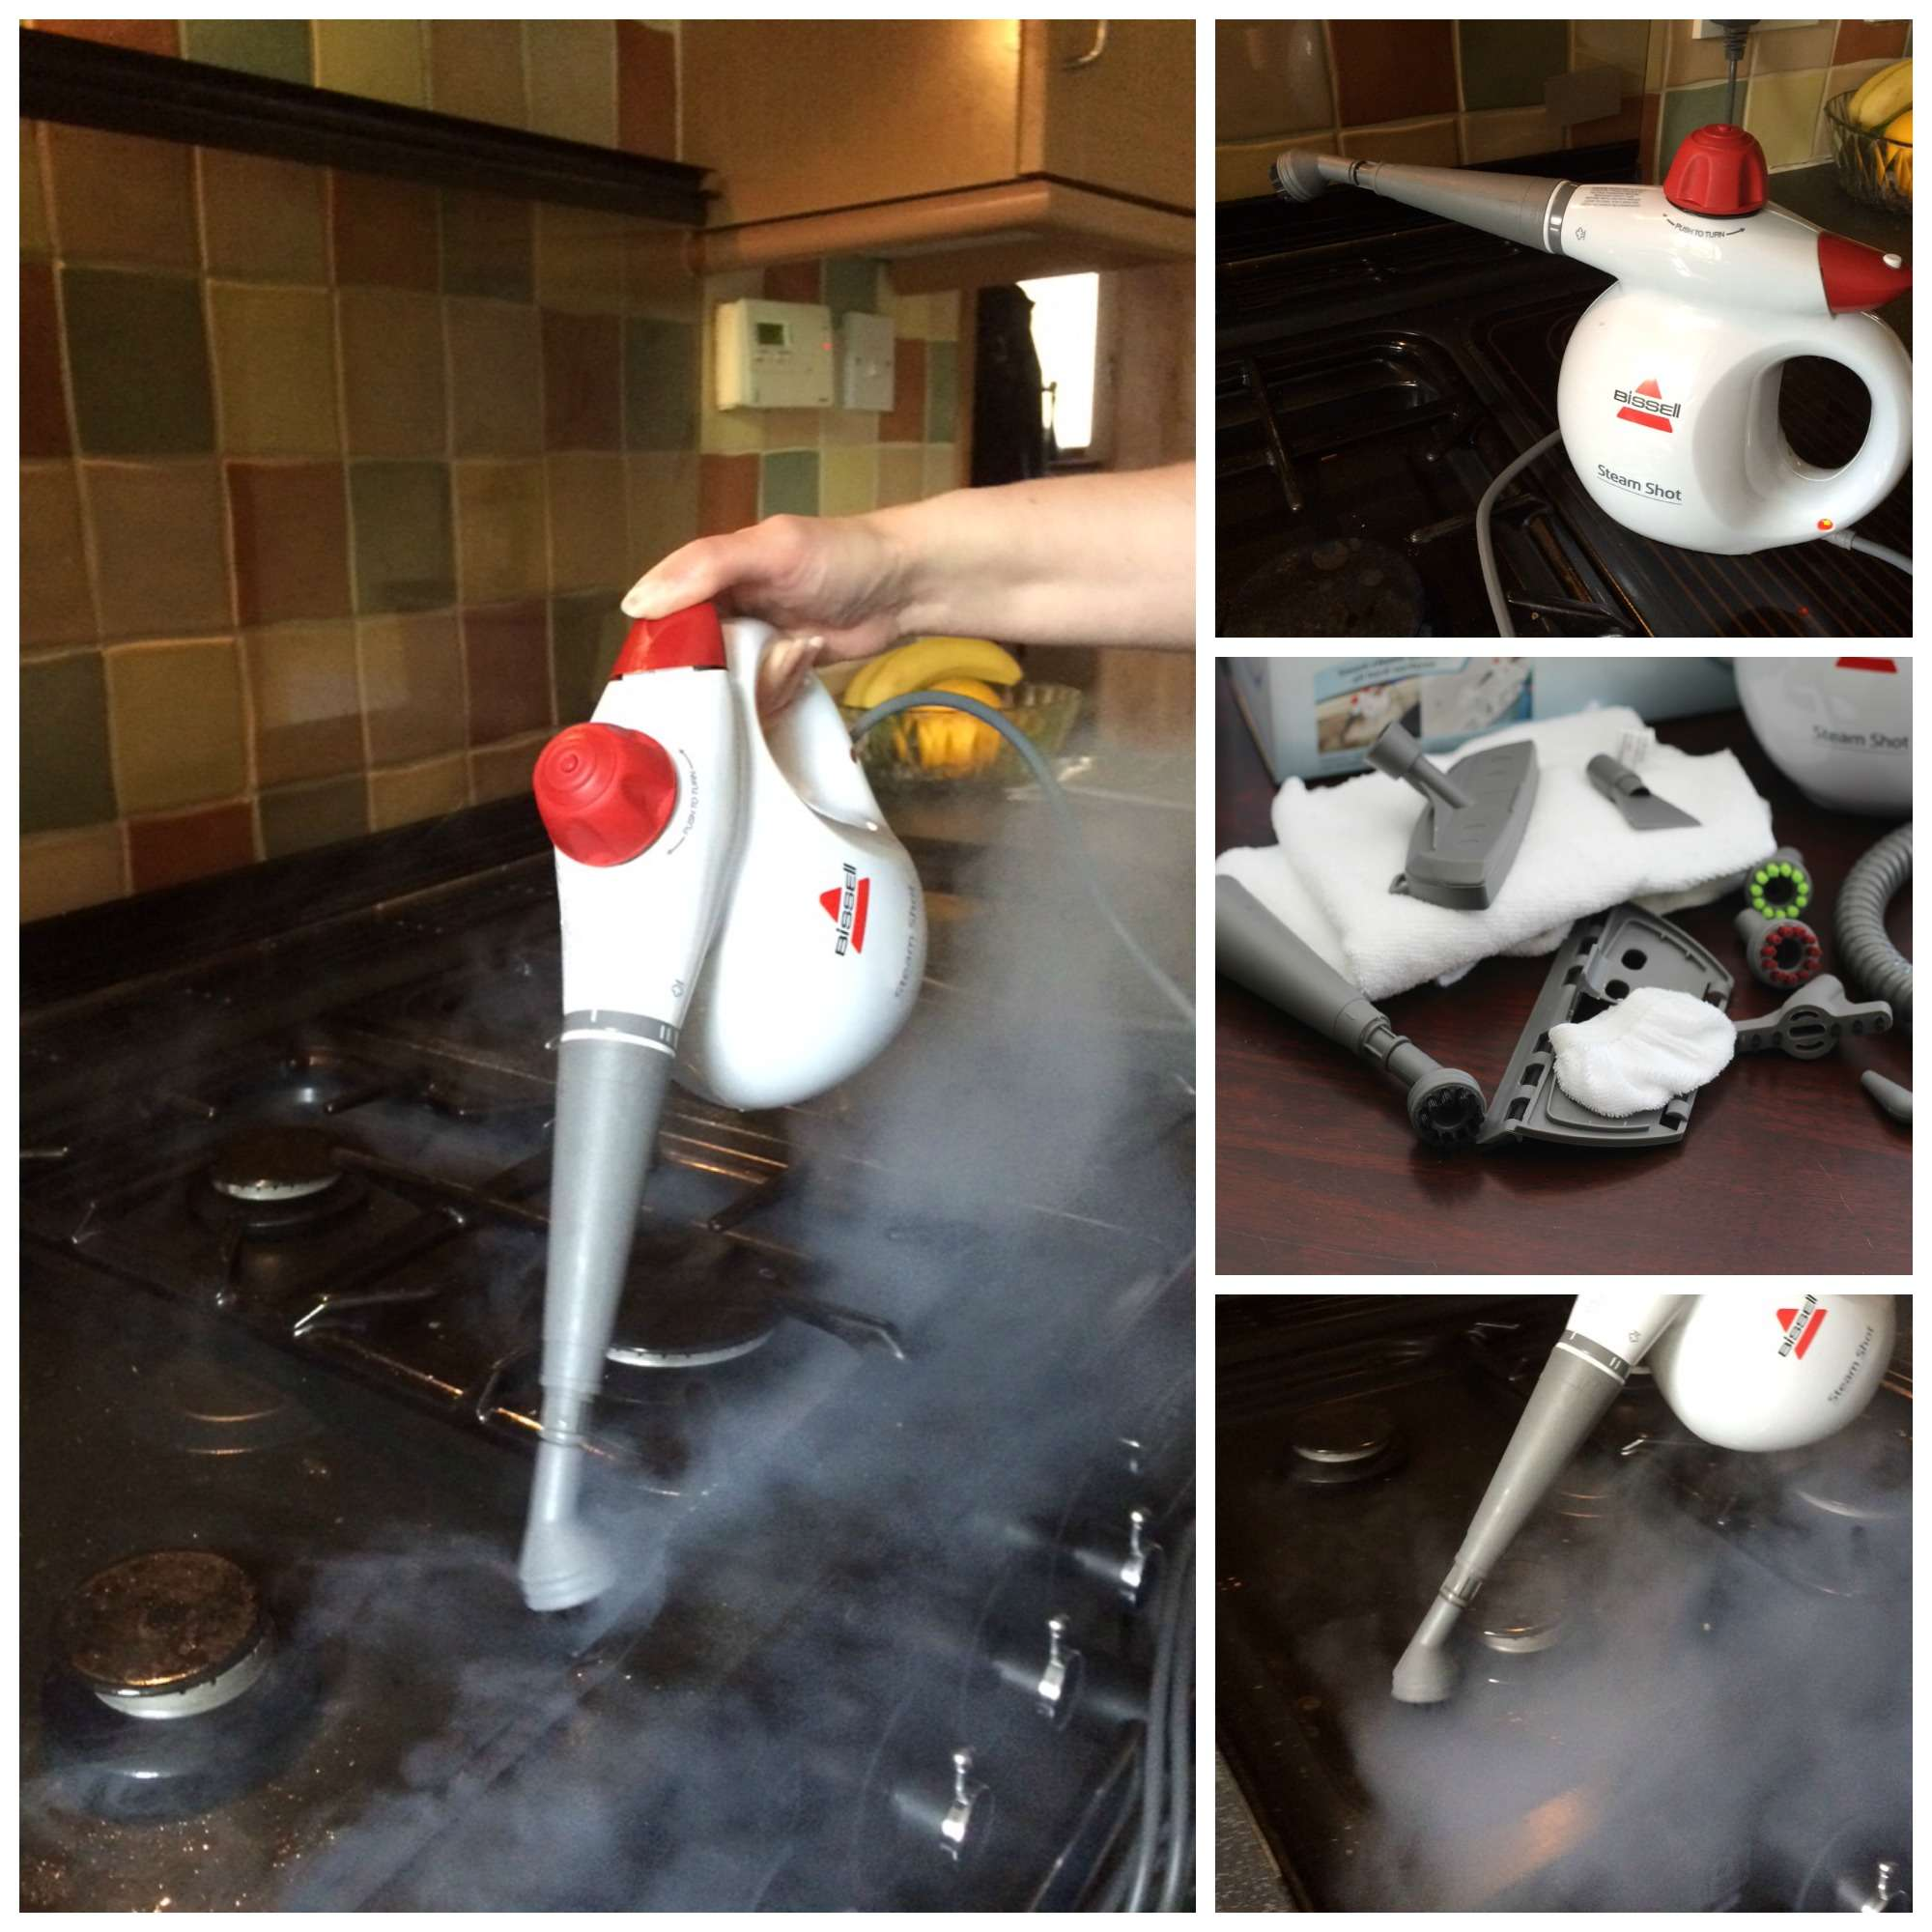 A Review Of The Bissell Steam Shot Verily Victoria Vocalises